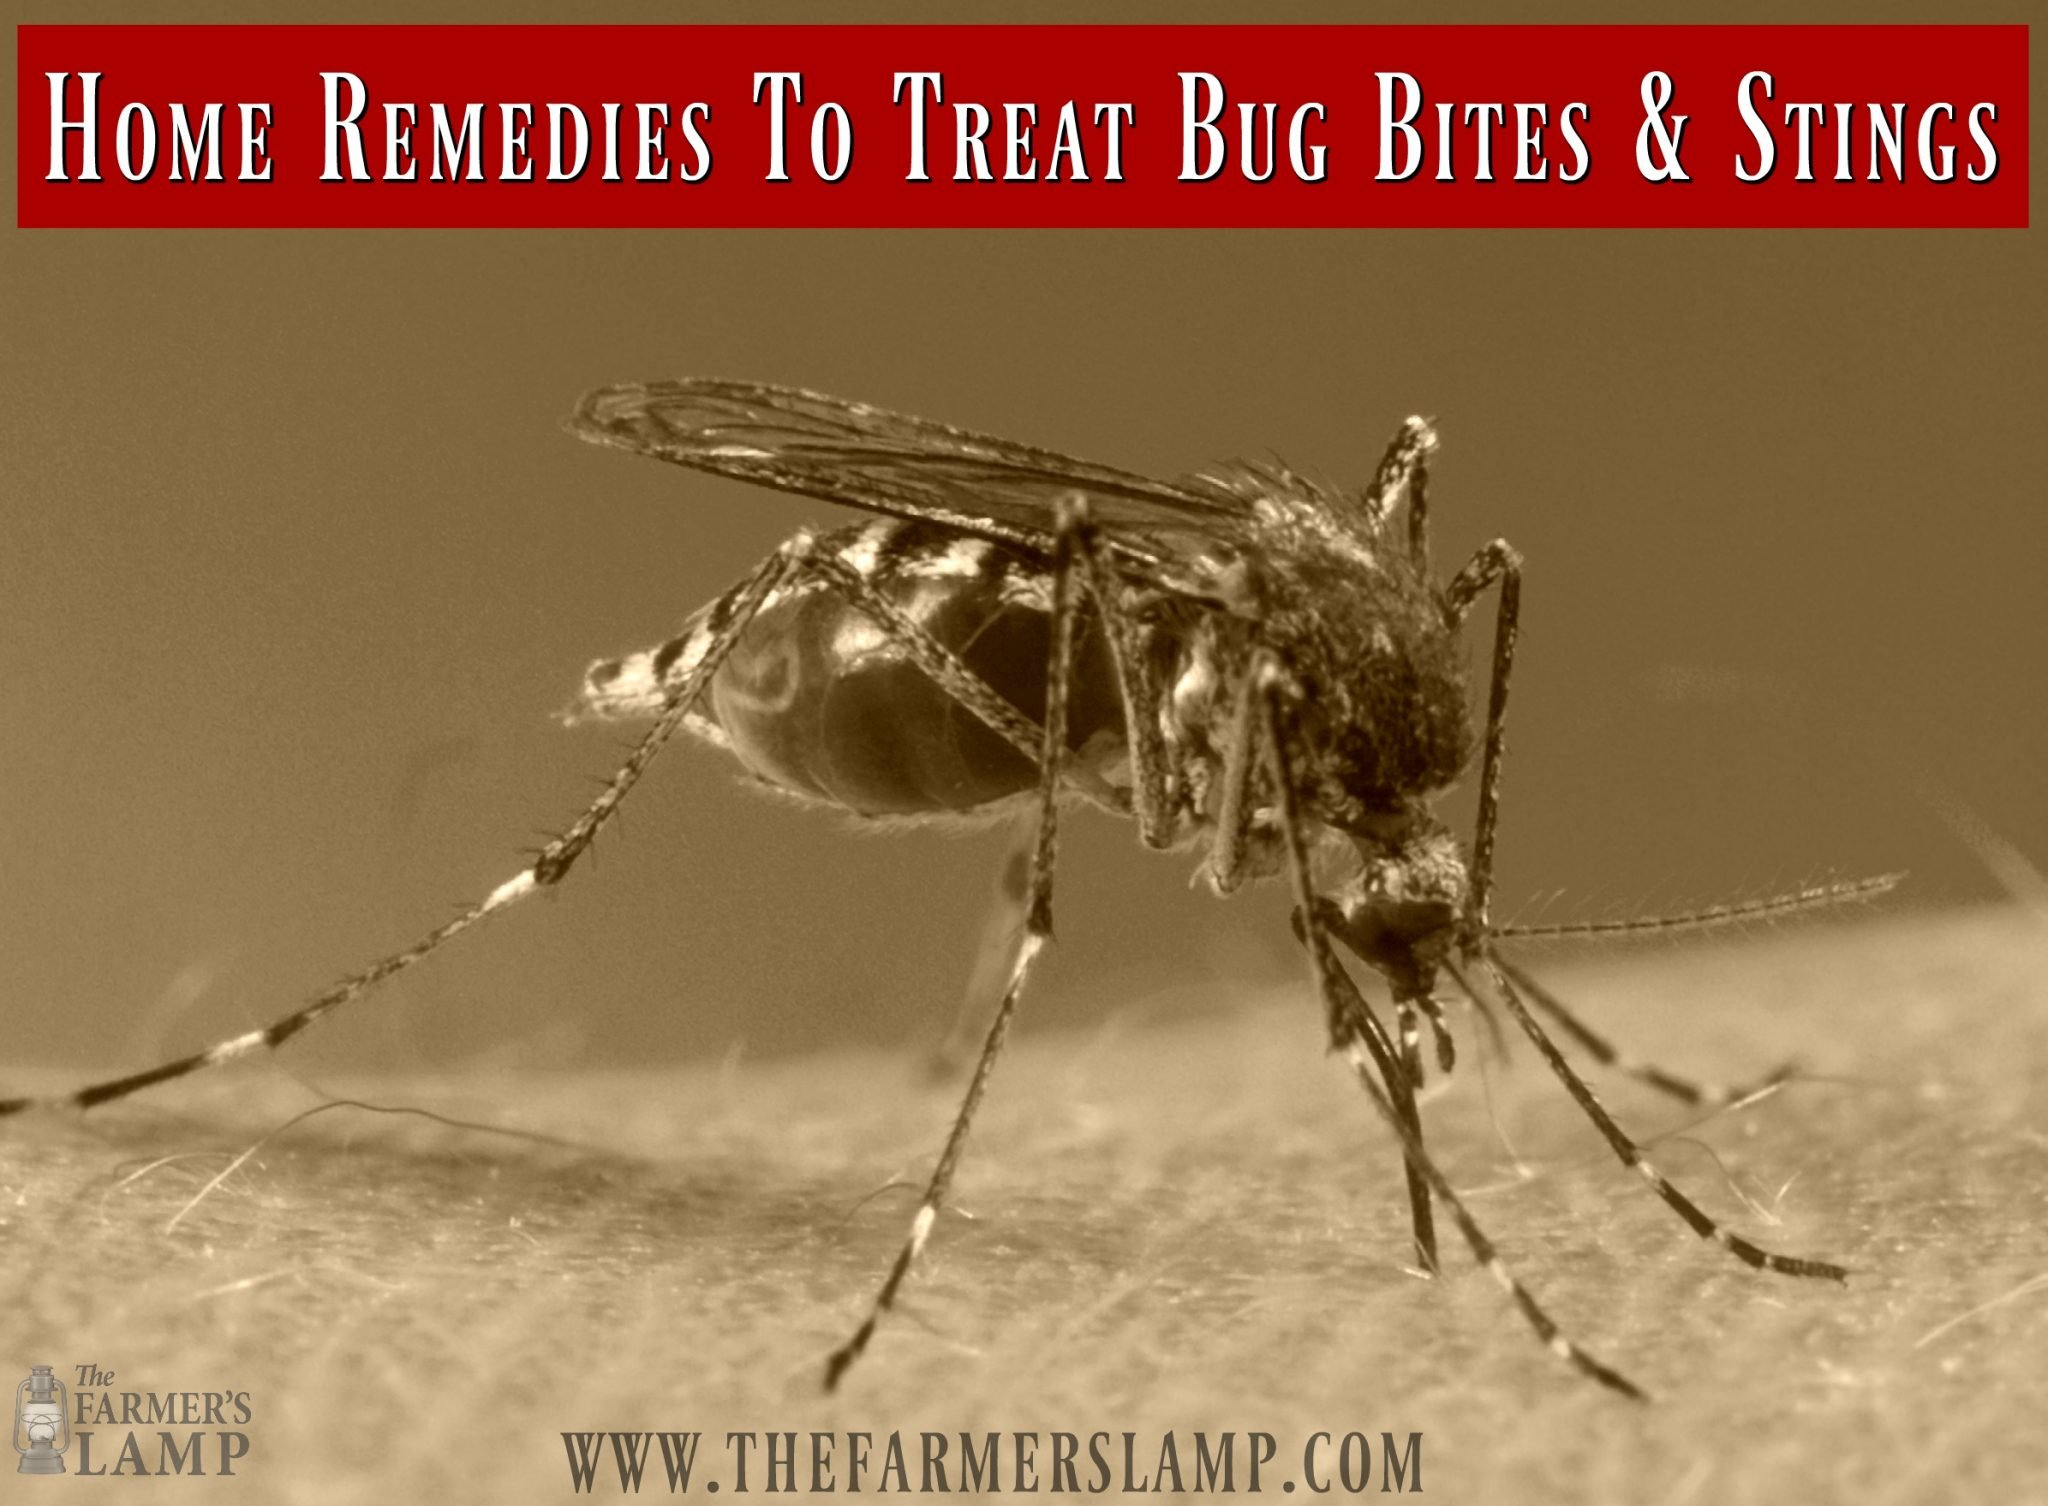 Home Remedies To Treat Bug Bites and Stings